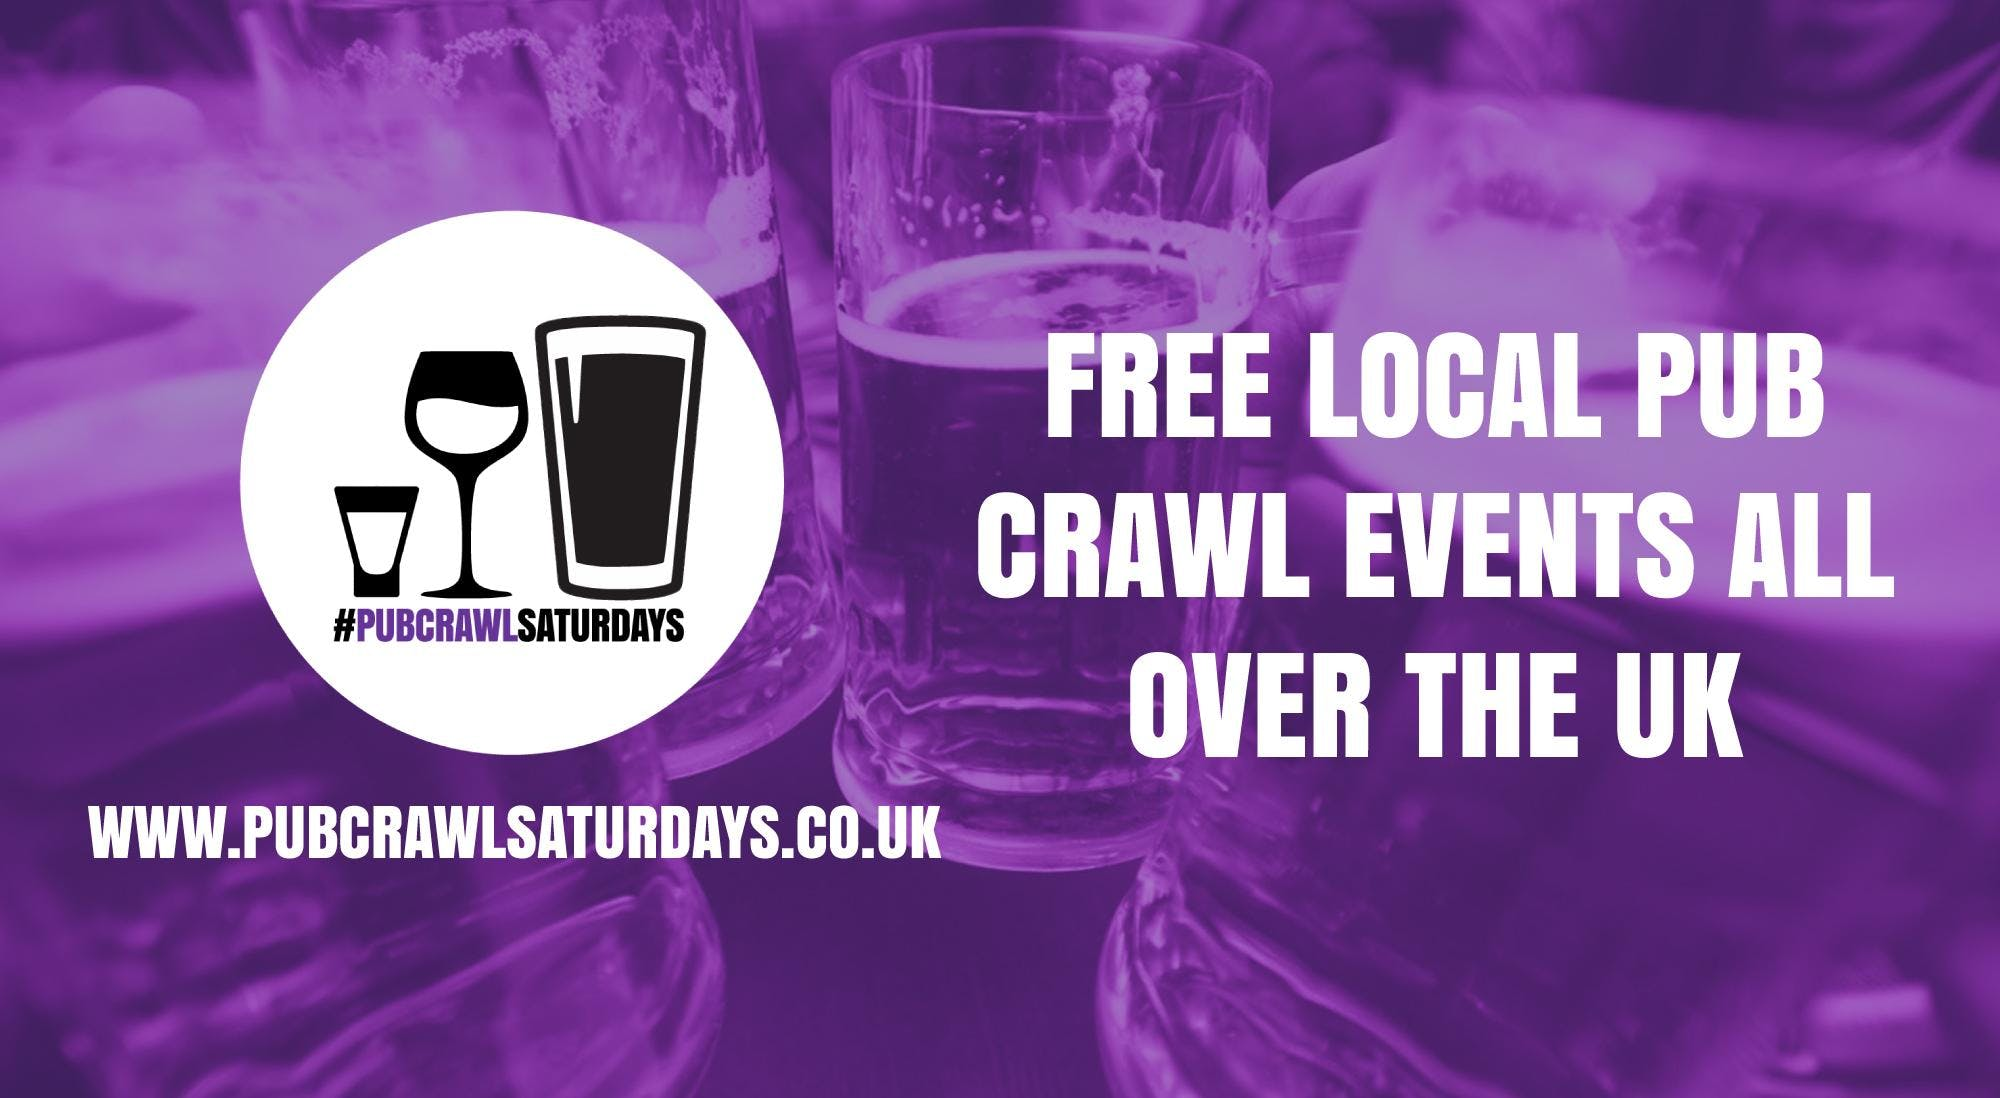 PUB CRAWL SATURDAYS! Free weekly pub crawl event in Nailsea